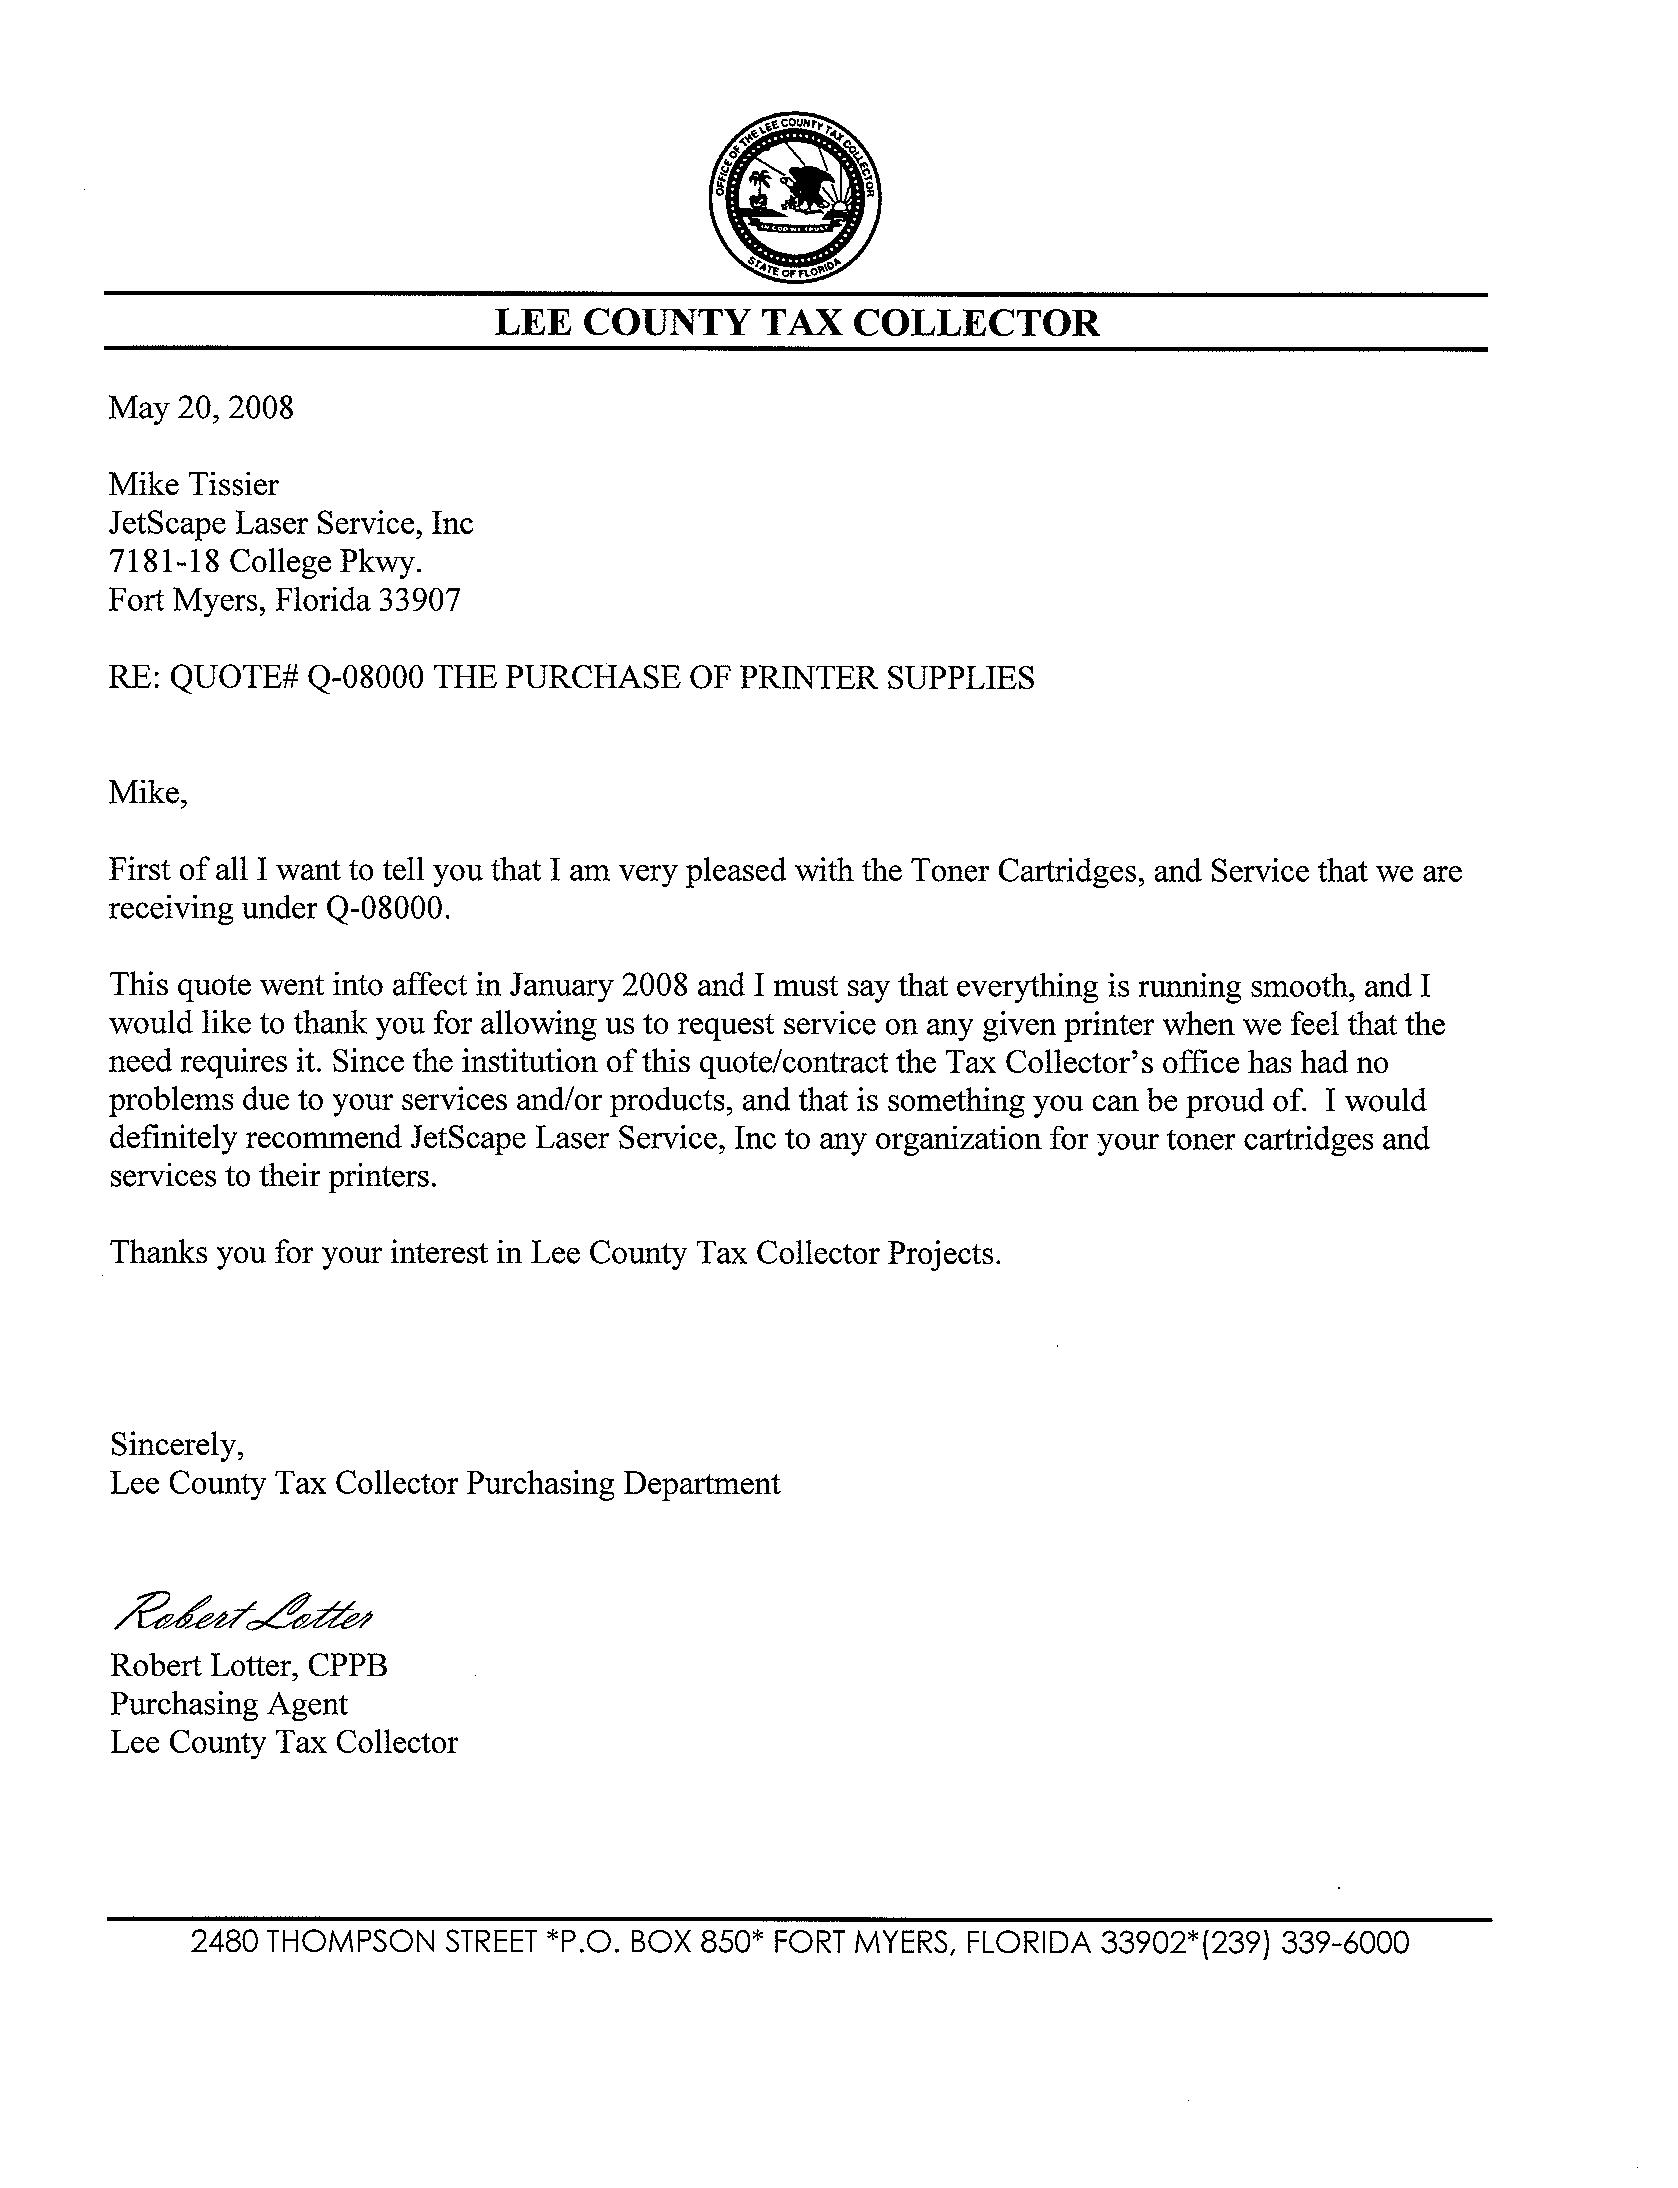 Lee County Tax Col Testimonial